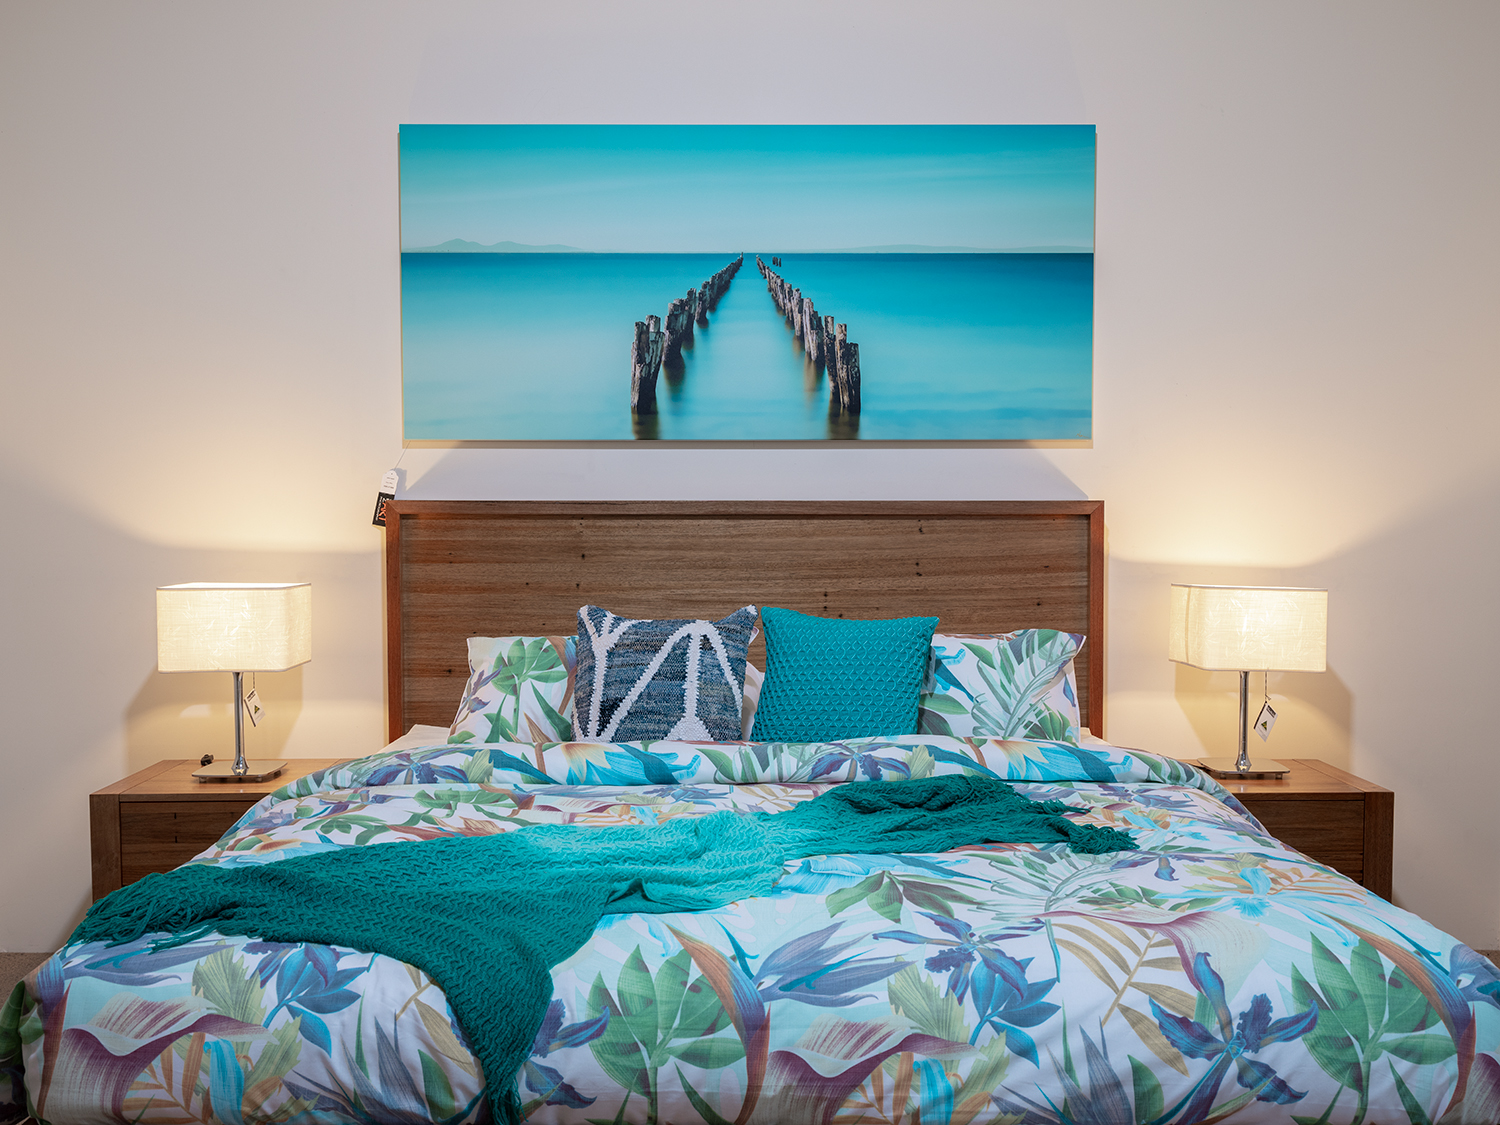 blissful-bay-stretched-canvas-bedshed-nikart